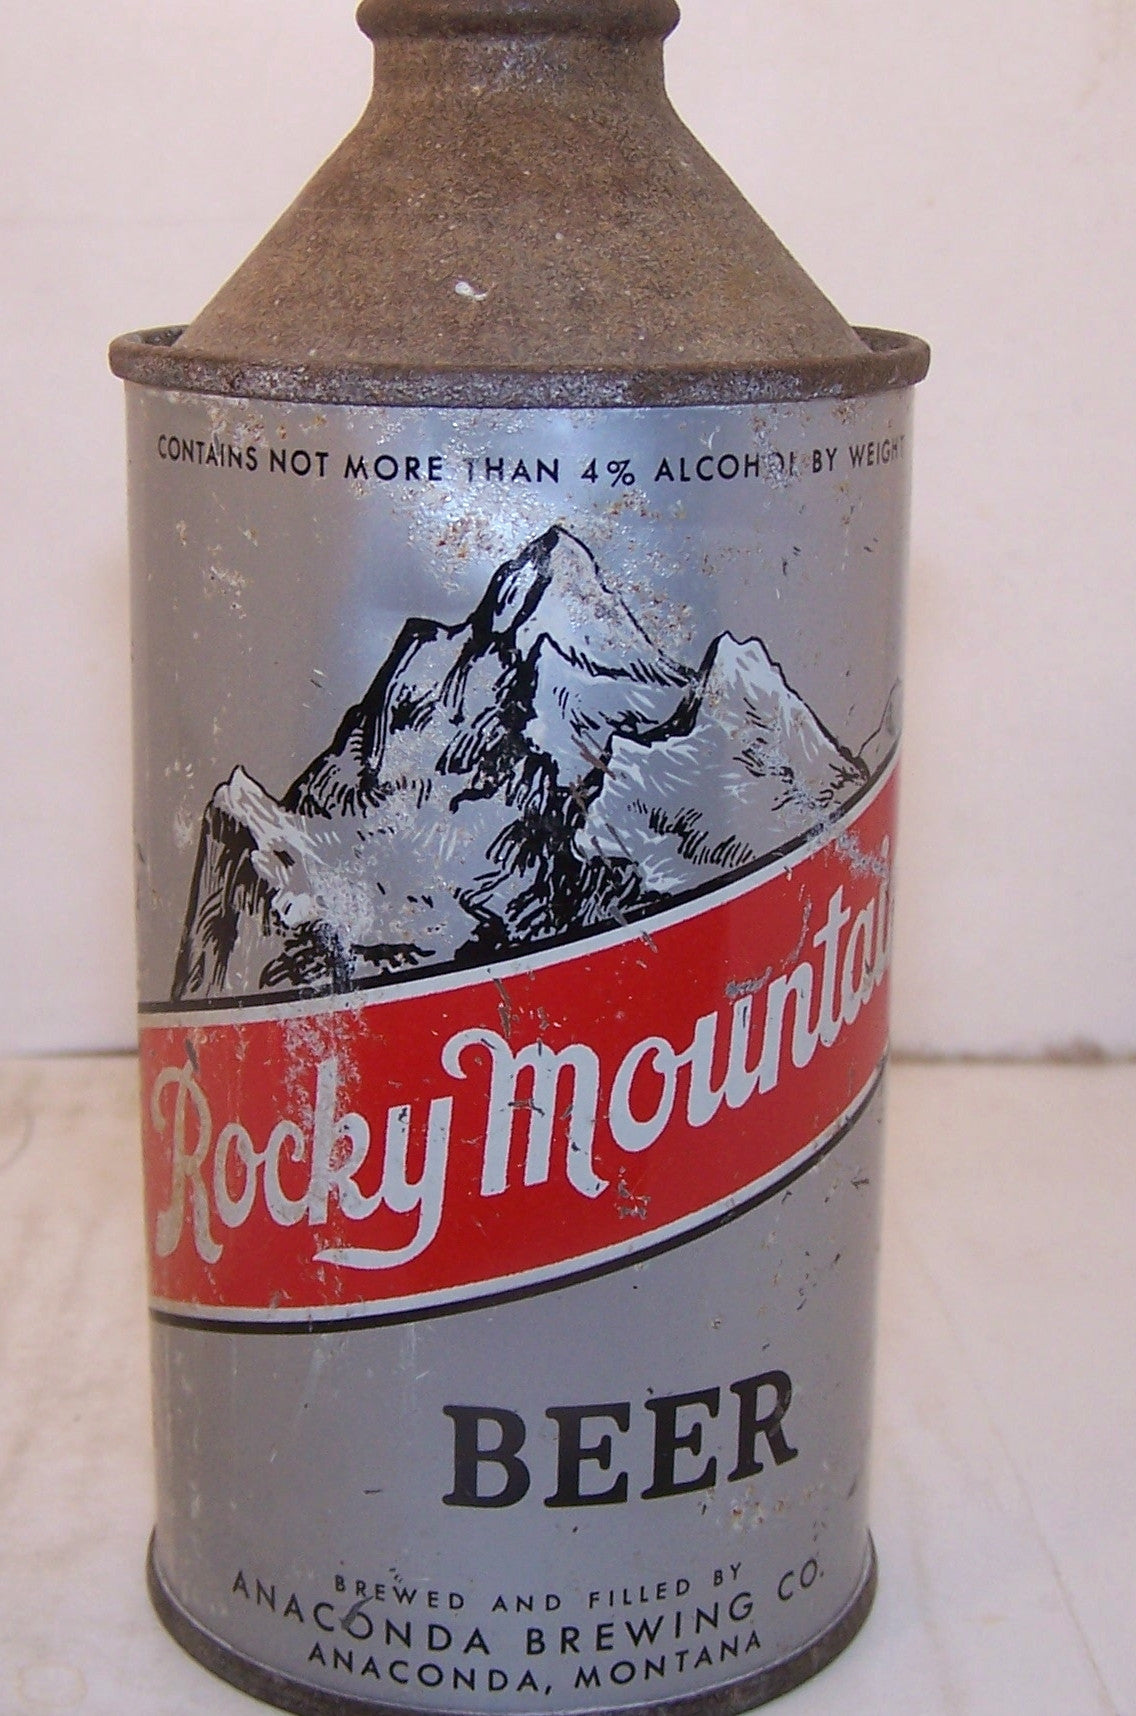 Rocky Mountain Beer, USBC 182-7, Grade 2 Sold on 3/17/15